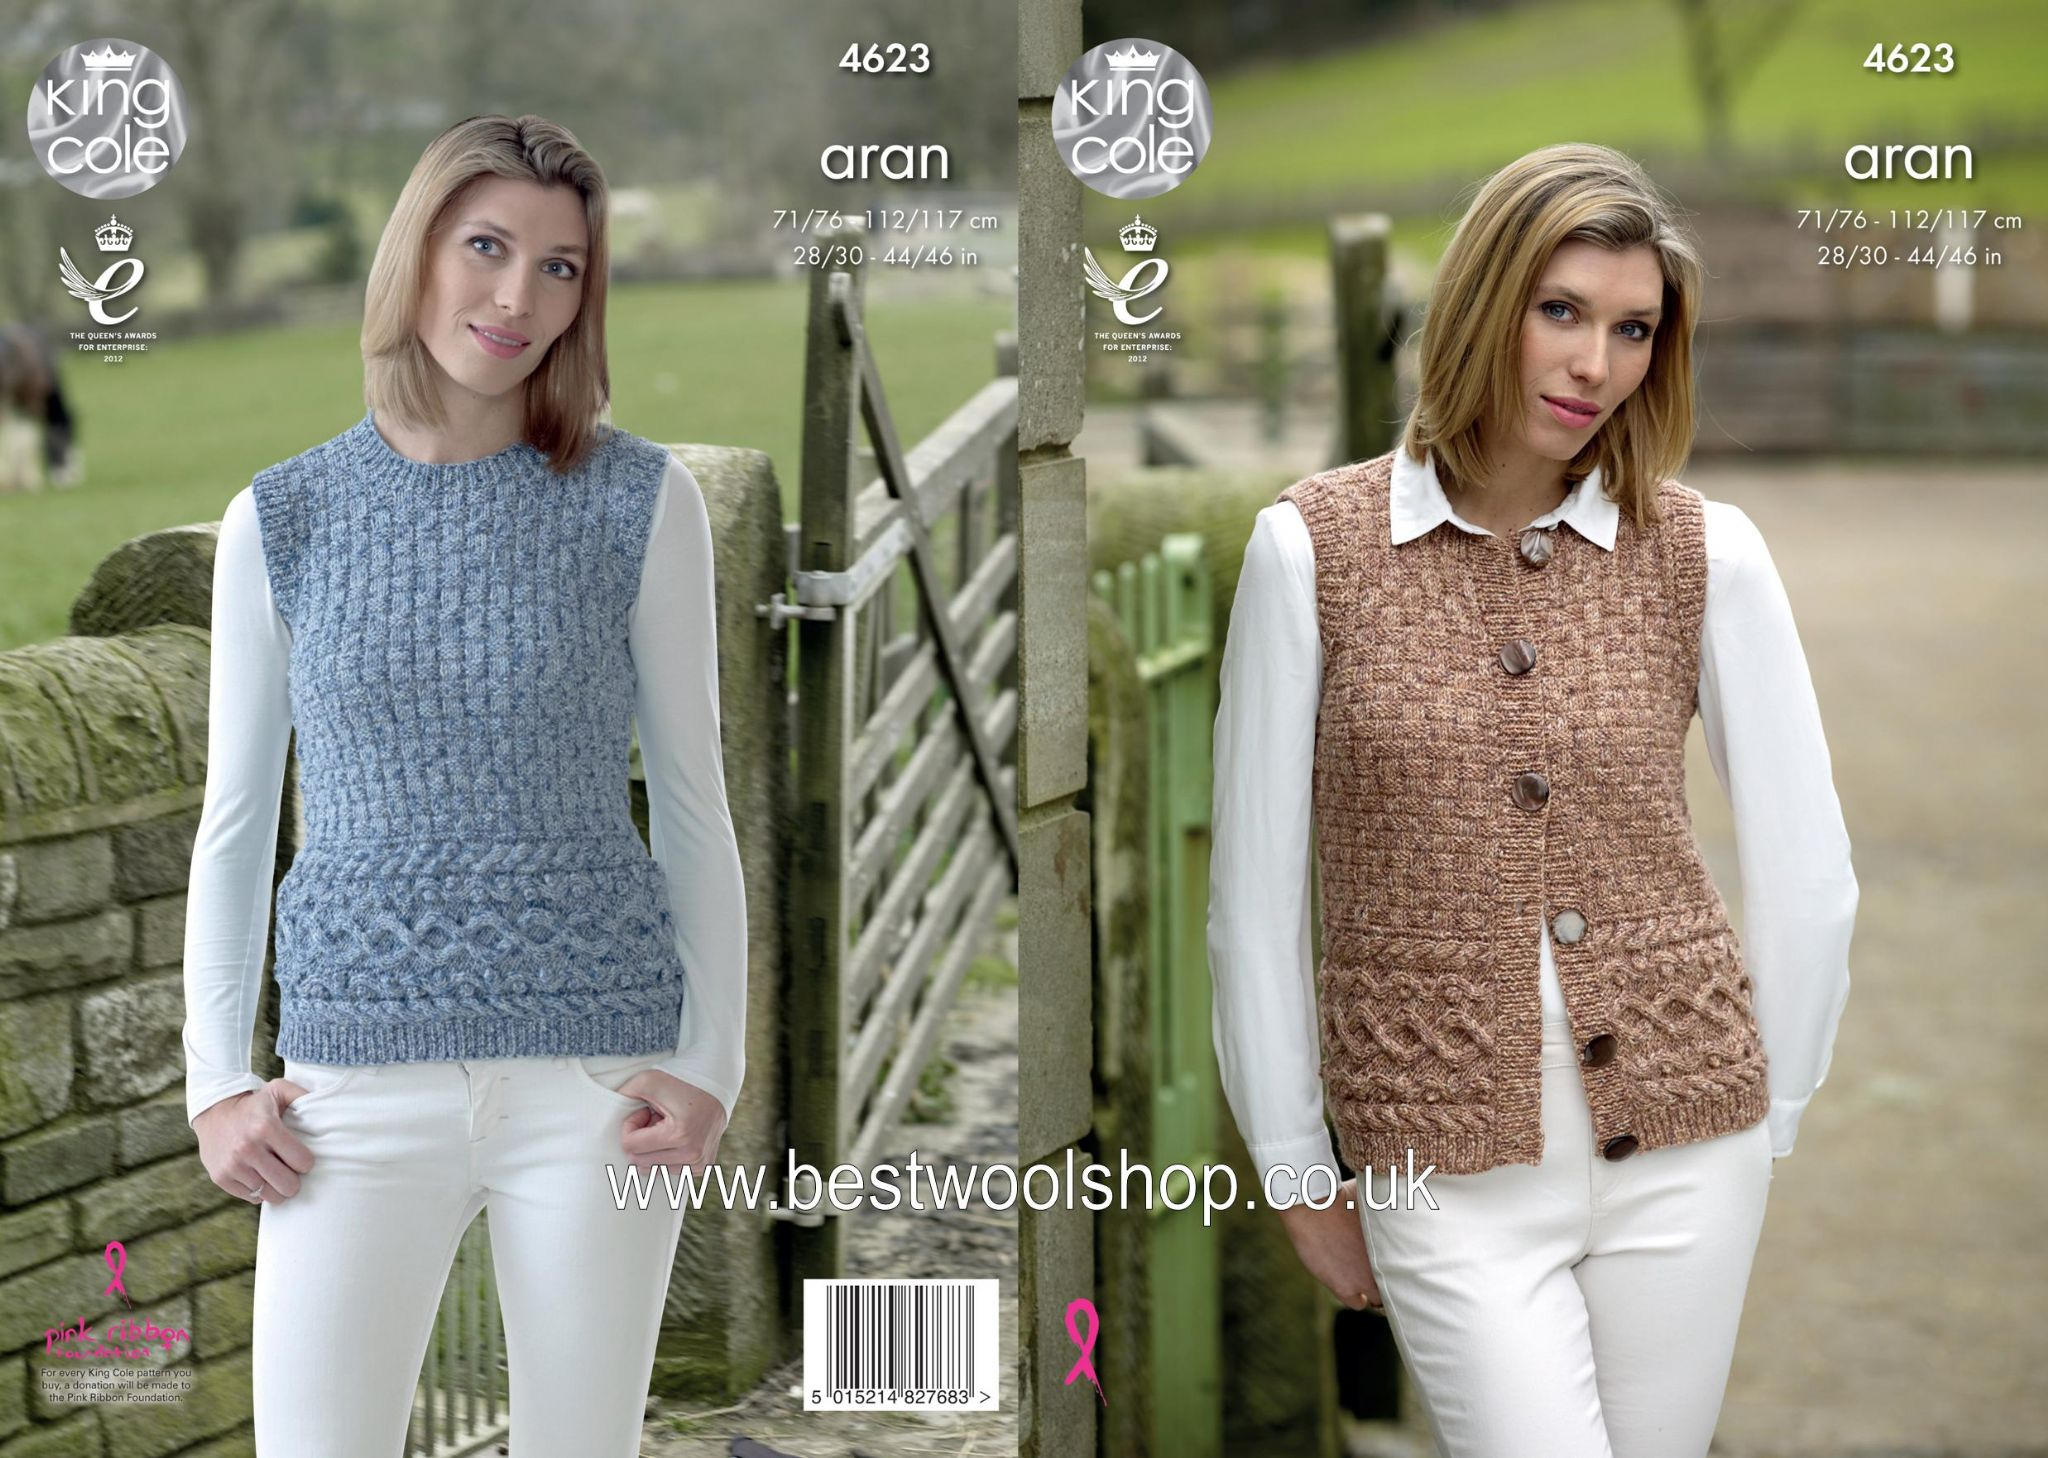 Knitted Tank Top Patterns 4623 King Cole Fashion Aran Combo Waistcoat Tank Top Sleeveless Sweater Knitting Pattern To Fit Chest 28 To 46